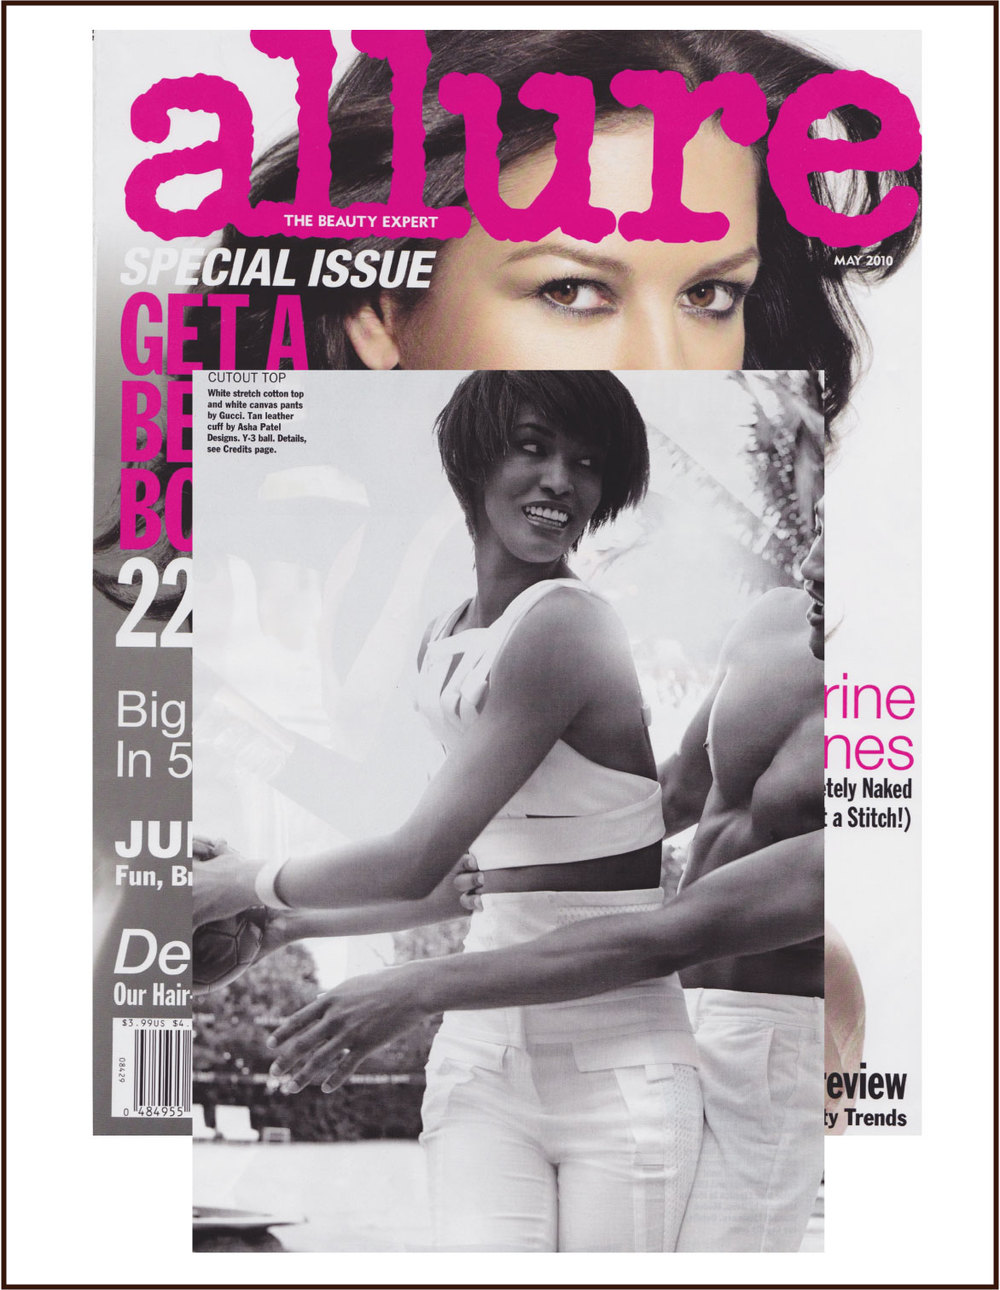 Press APD Allure May 2010.jpg